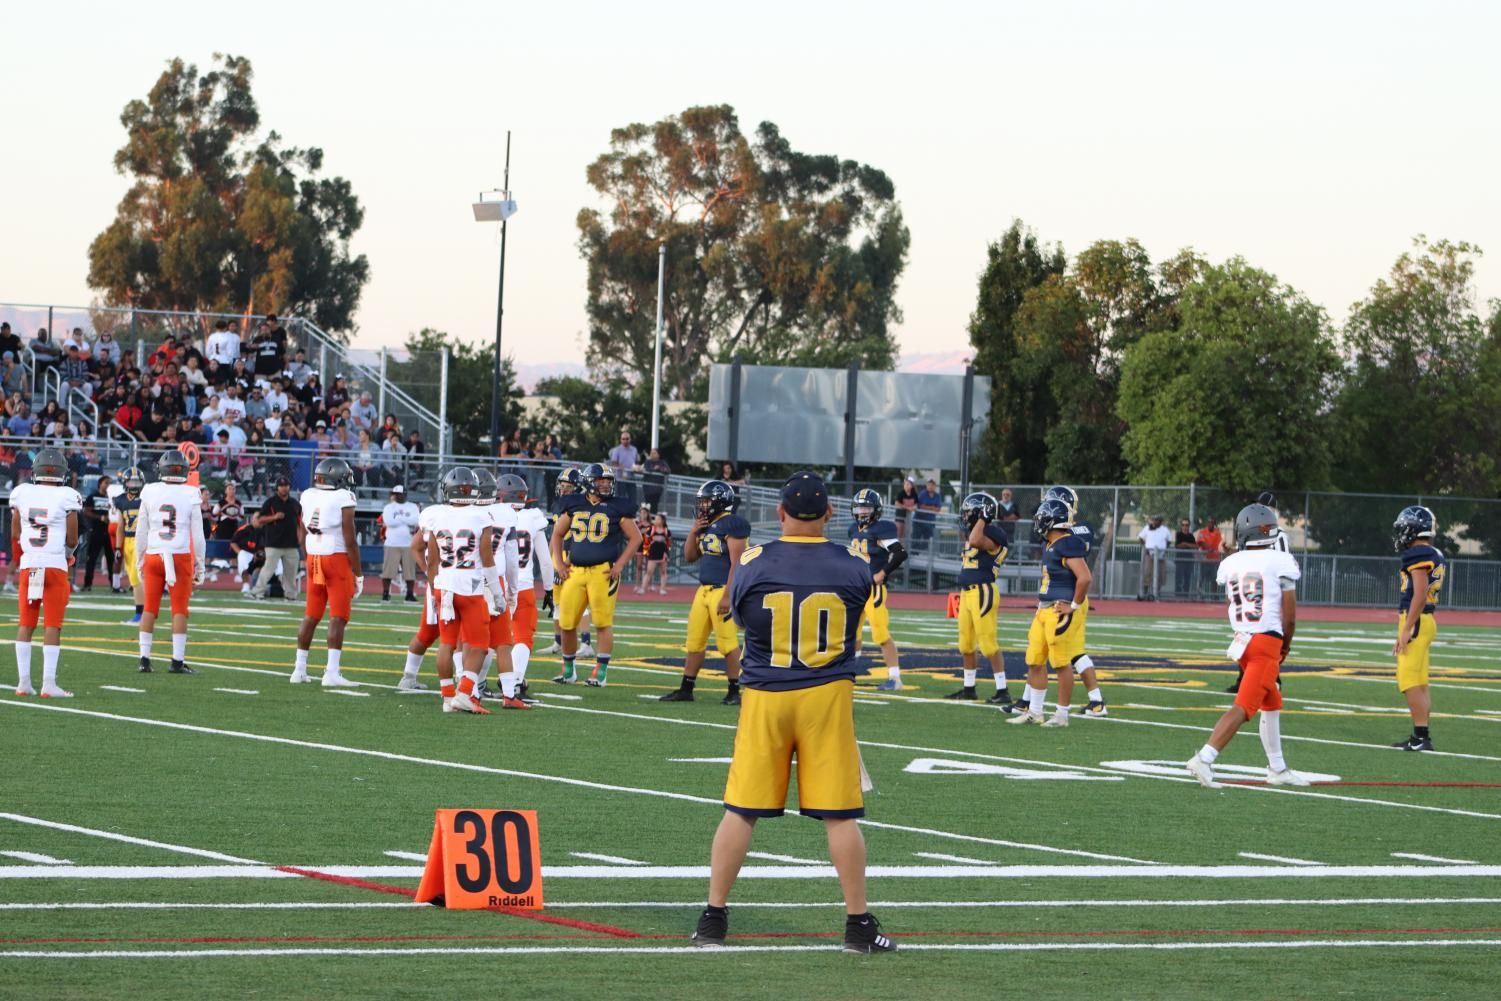 Players lining up the 40 yard mark. It was an intense game between the Lions and the Raiders. The game took place at the Lincoln football field on Friday, August 30, 2019. (Jetzemani Diaz Villalobos--Lion Tales)